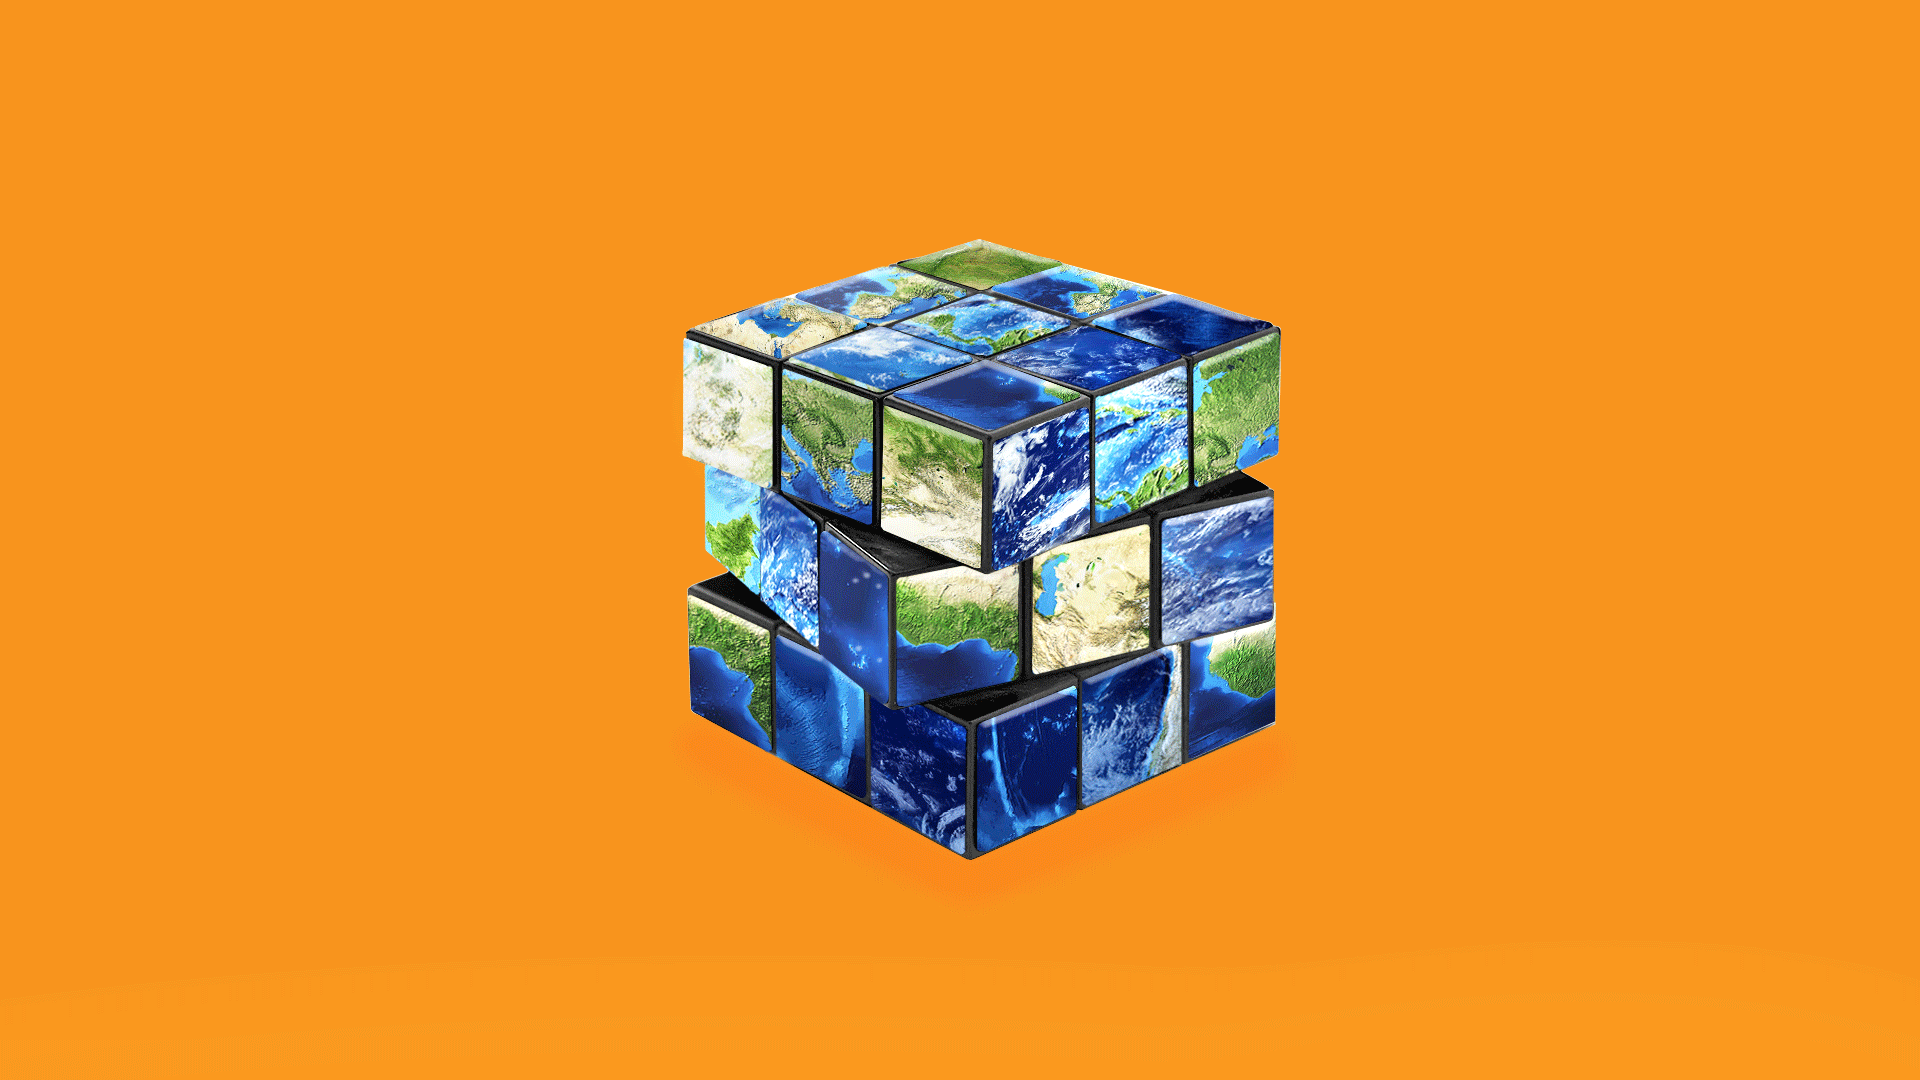 Illustration for the immense challenge of tackling climate change